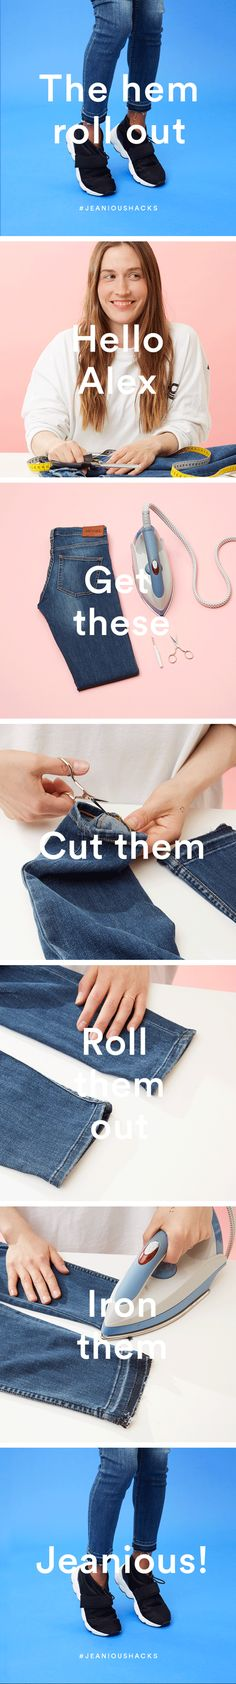 You will need: Sharp scissors, an iron and jeans Step 1: Cut them Carefully unpick the hem seam. Be patient, it's tricky, small sharp scissors are best. Step 2: Roll them out Roll out the hem. Step 3: Iron them Iron the hem flat. Step 4: Wear them Ta-dah! You're now the proud owner of srsly simple and srsly stylish customised jeans. Jeanious!